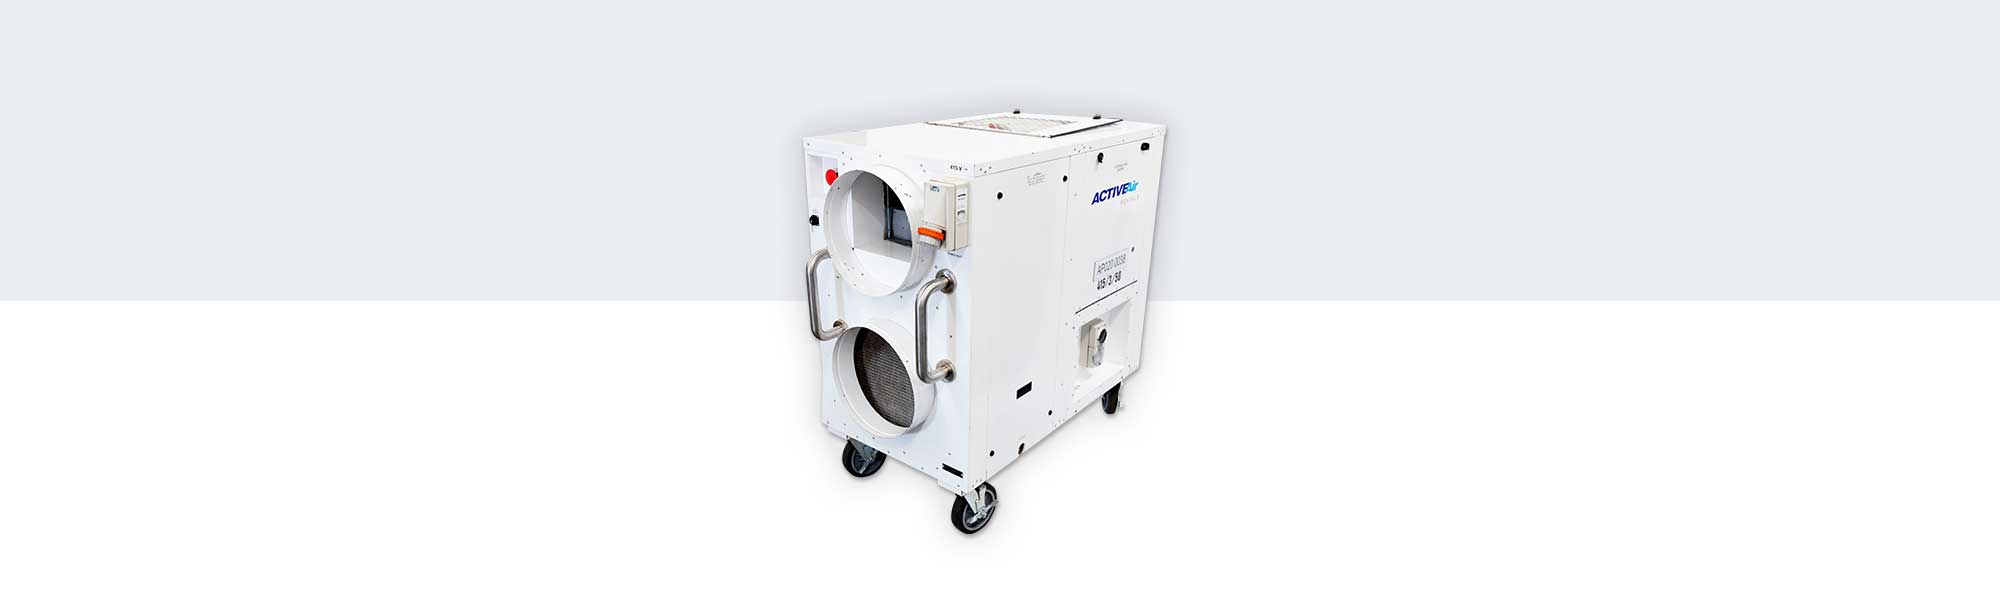 20 kW Portable Air Conditioner - Active Air